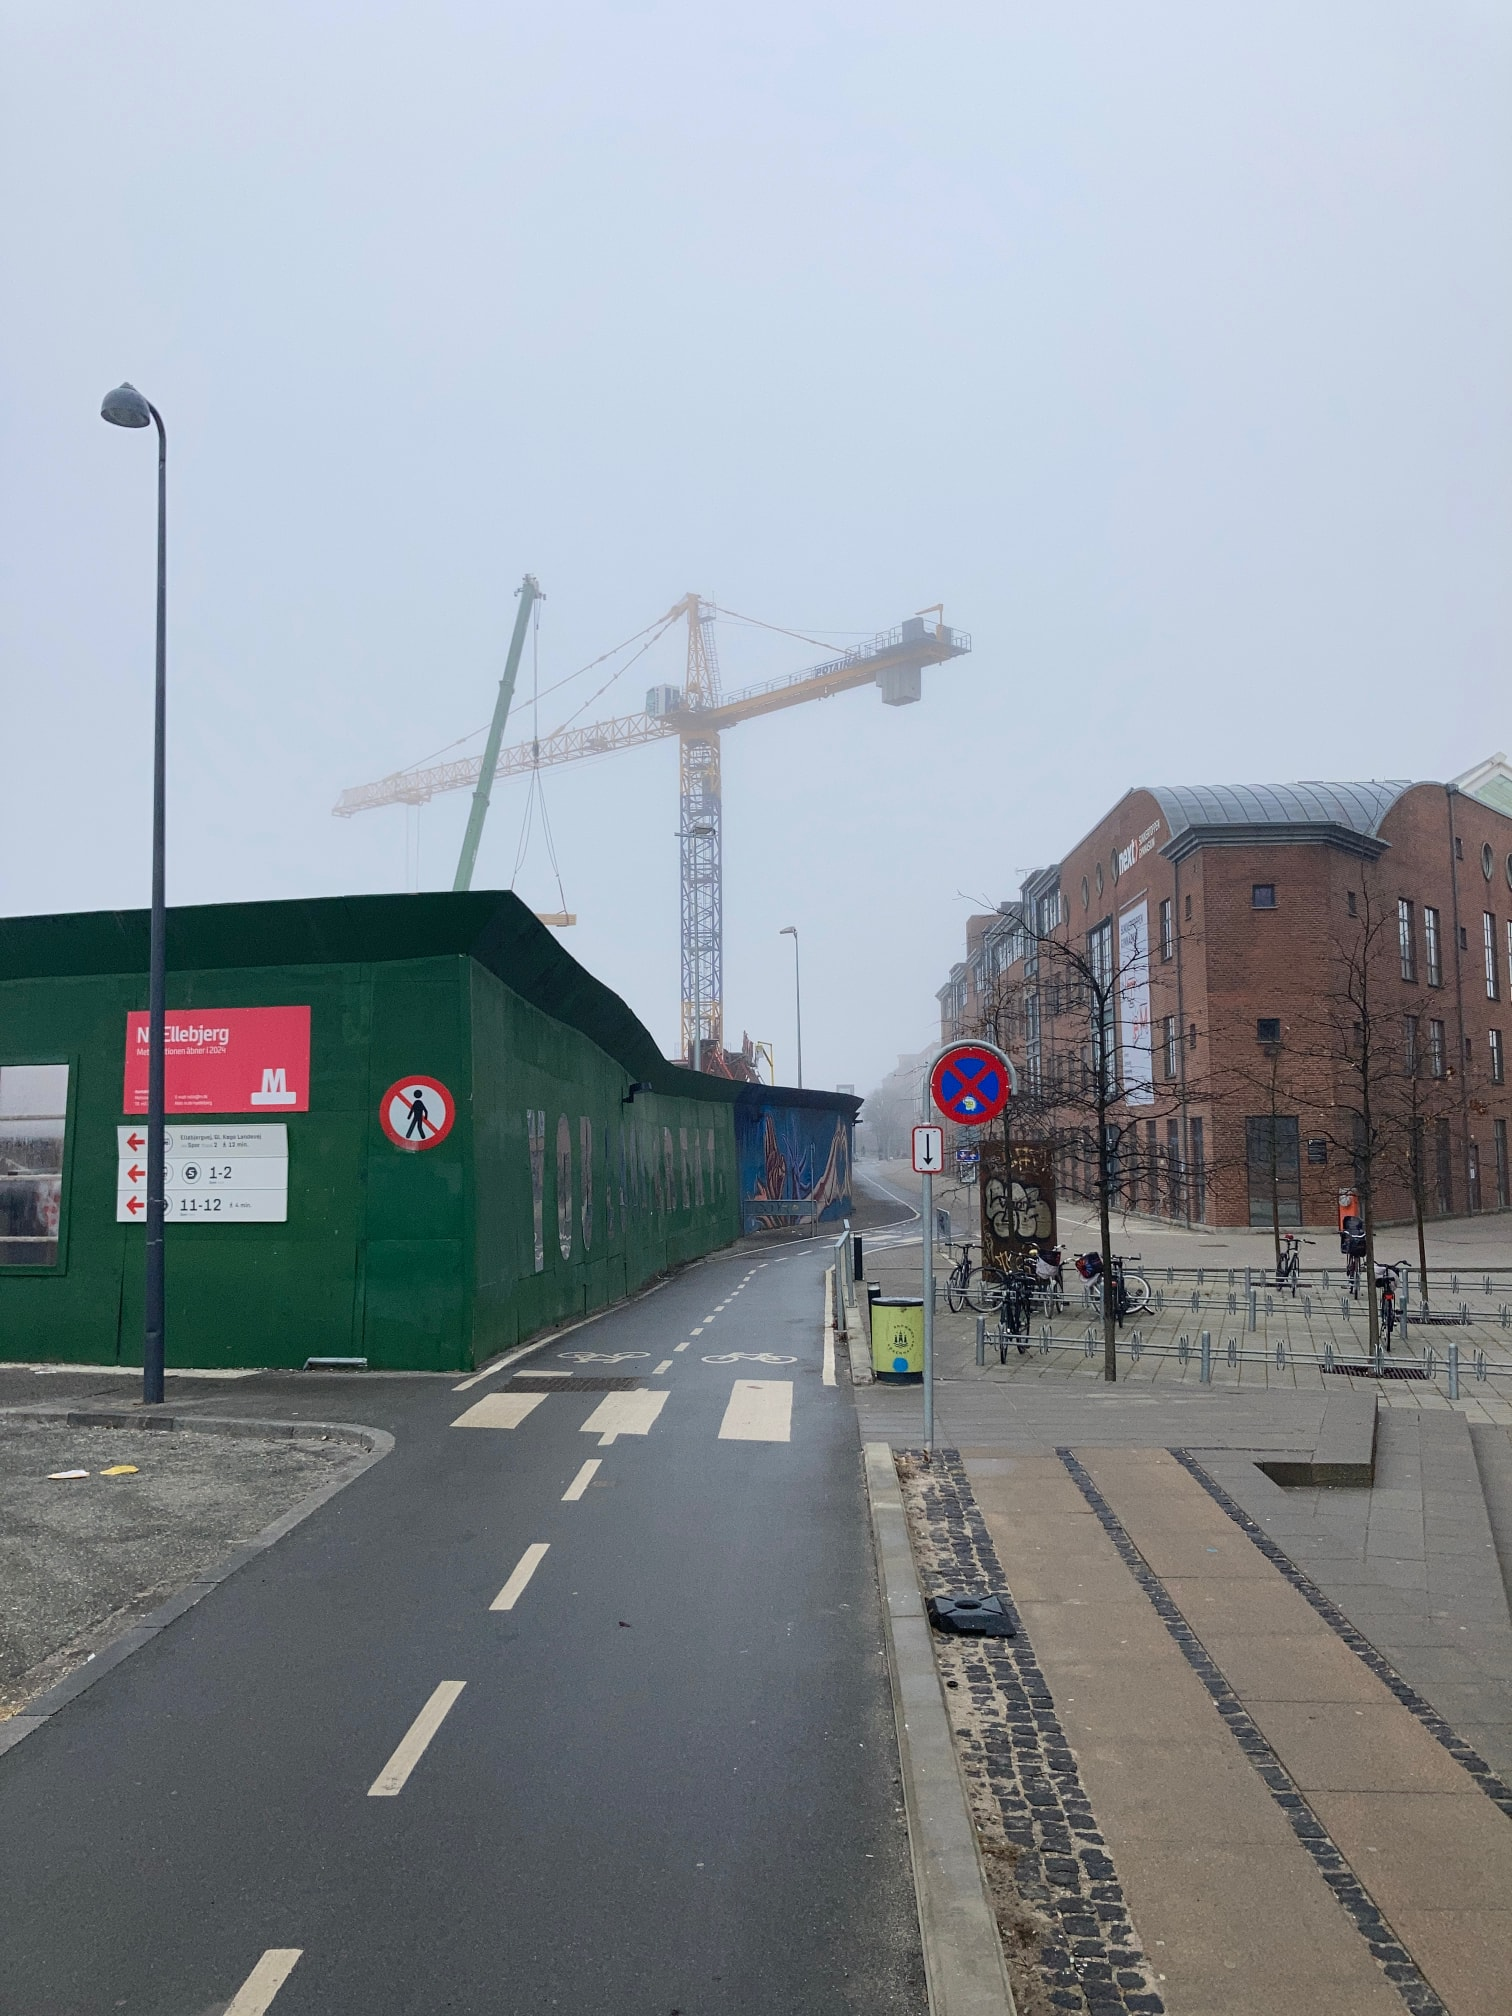 A view I know all too well, looking different in the morning mist. A long and winding road, fading away. Deserted. No entry sign on the Metro construction wall. Otherworldly construction cranes – something for Fellini.